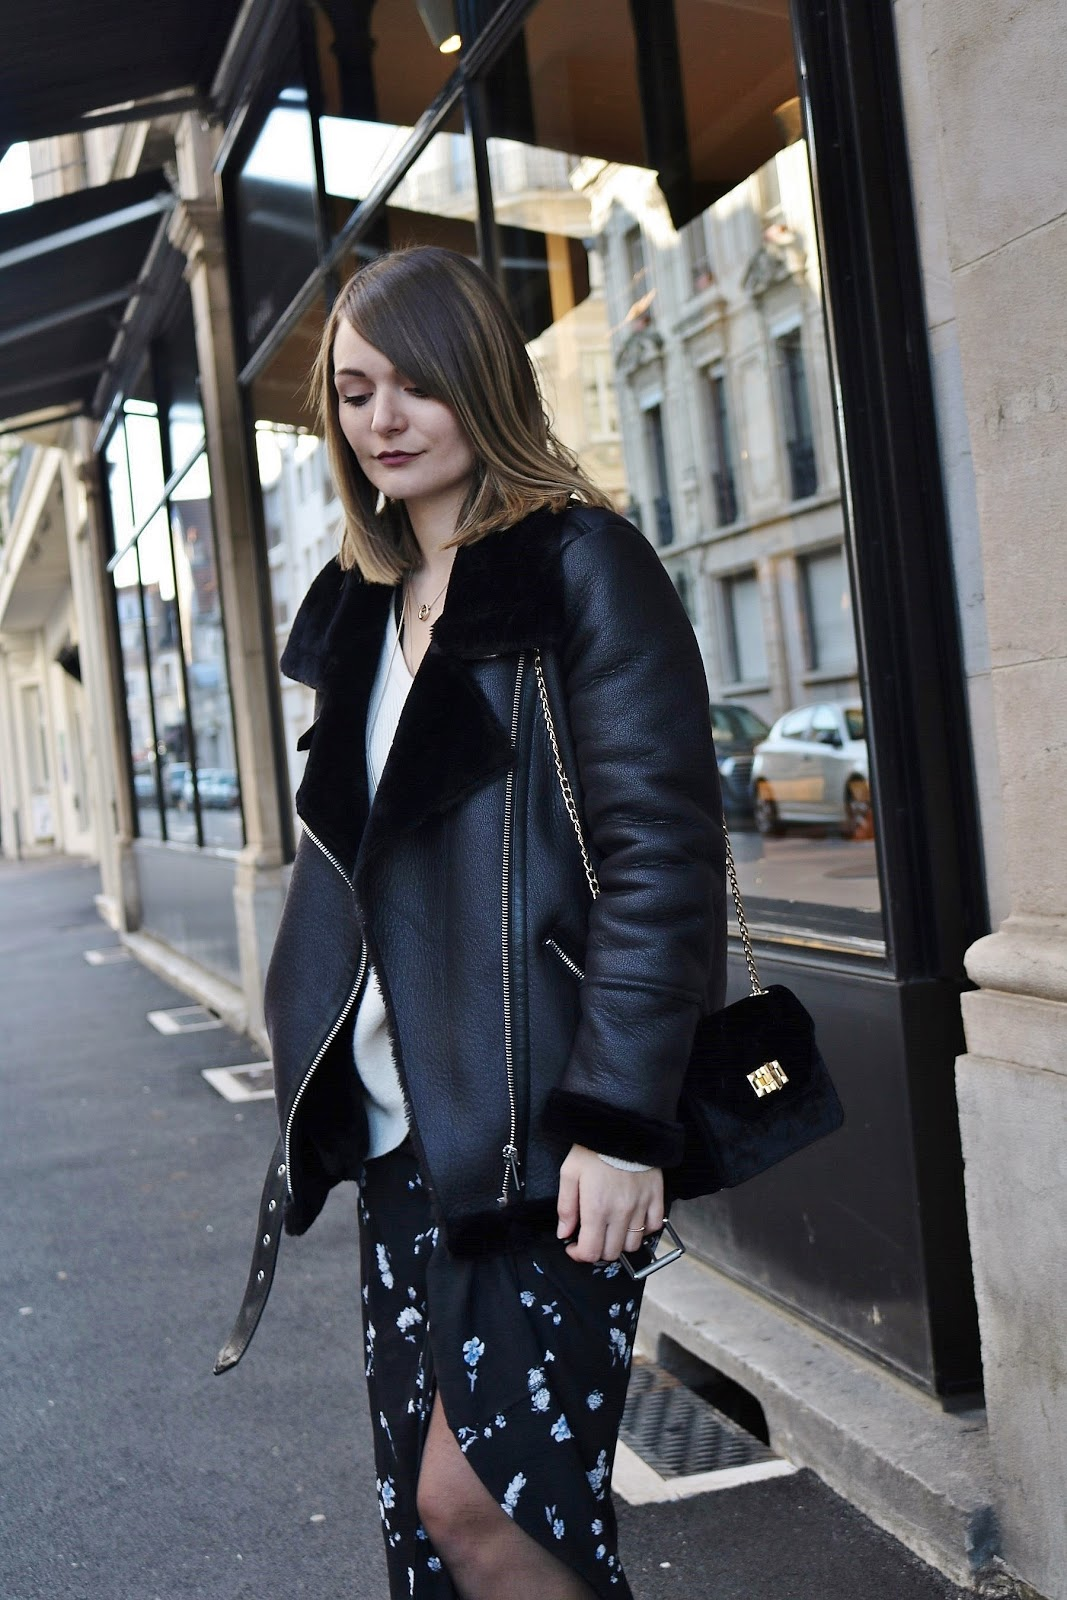 pauline-dress-blog-mode-deco-lifestyle-besancon-doubs-fille-franche-comte-bombardier-look-ootd-tenue-noir-pimkie-jupe-robe-longue-fleurie-sac-velours-pull-loose-cosy-col-v